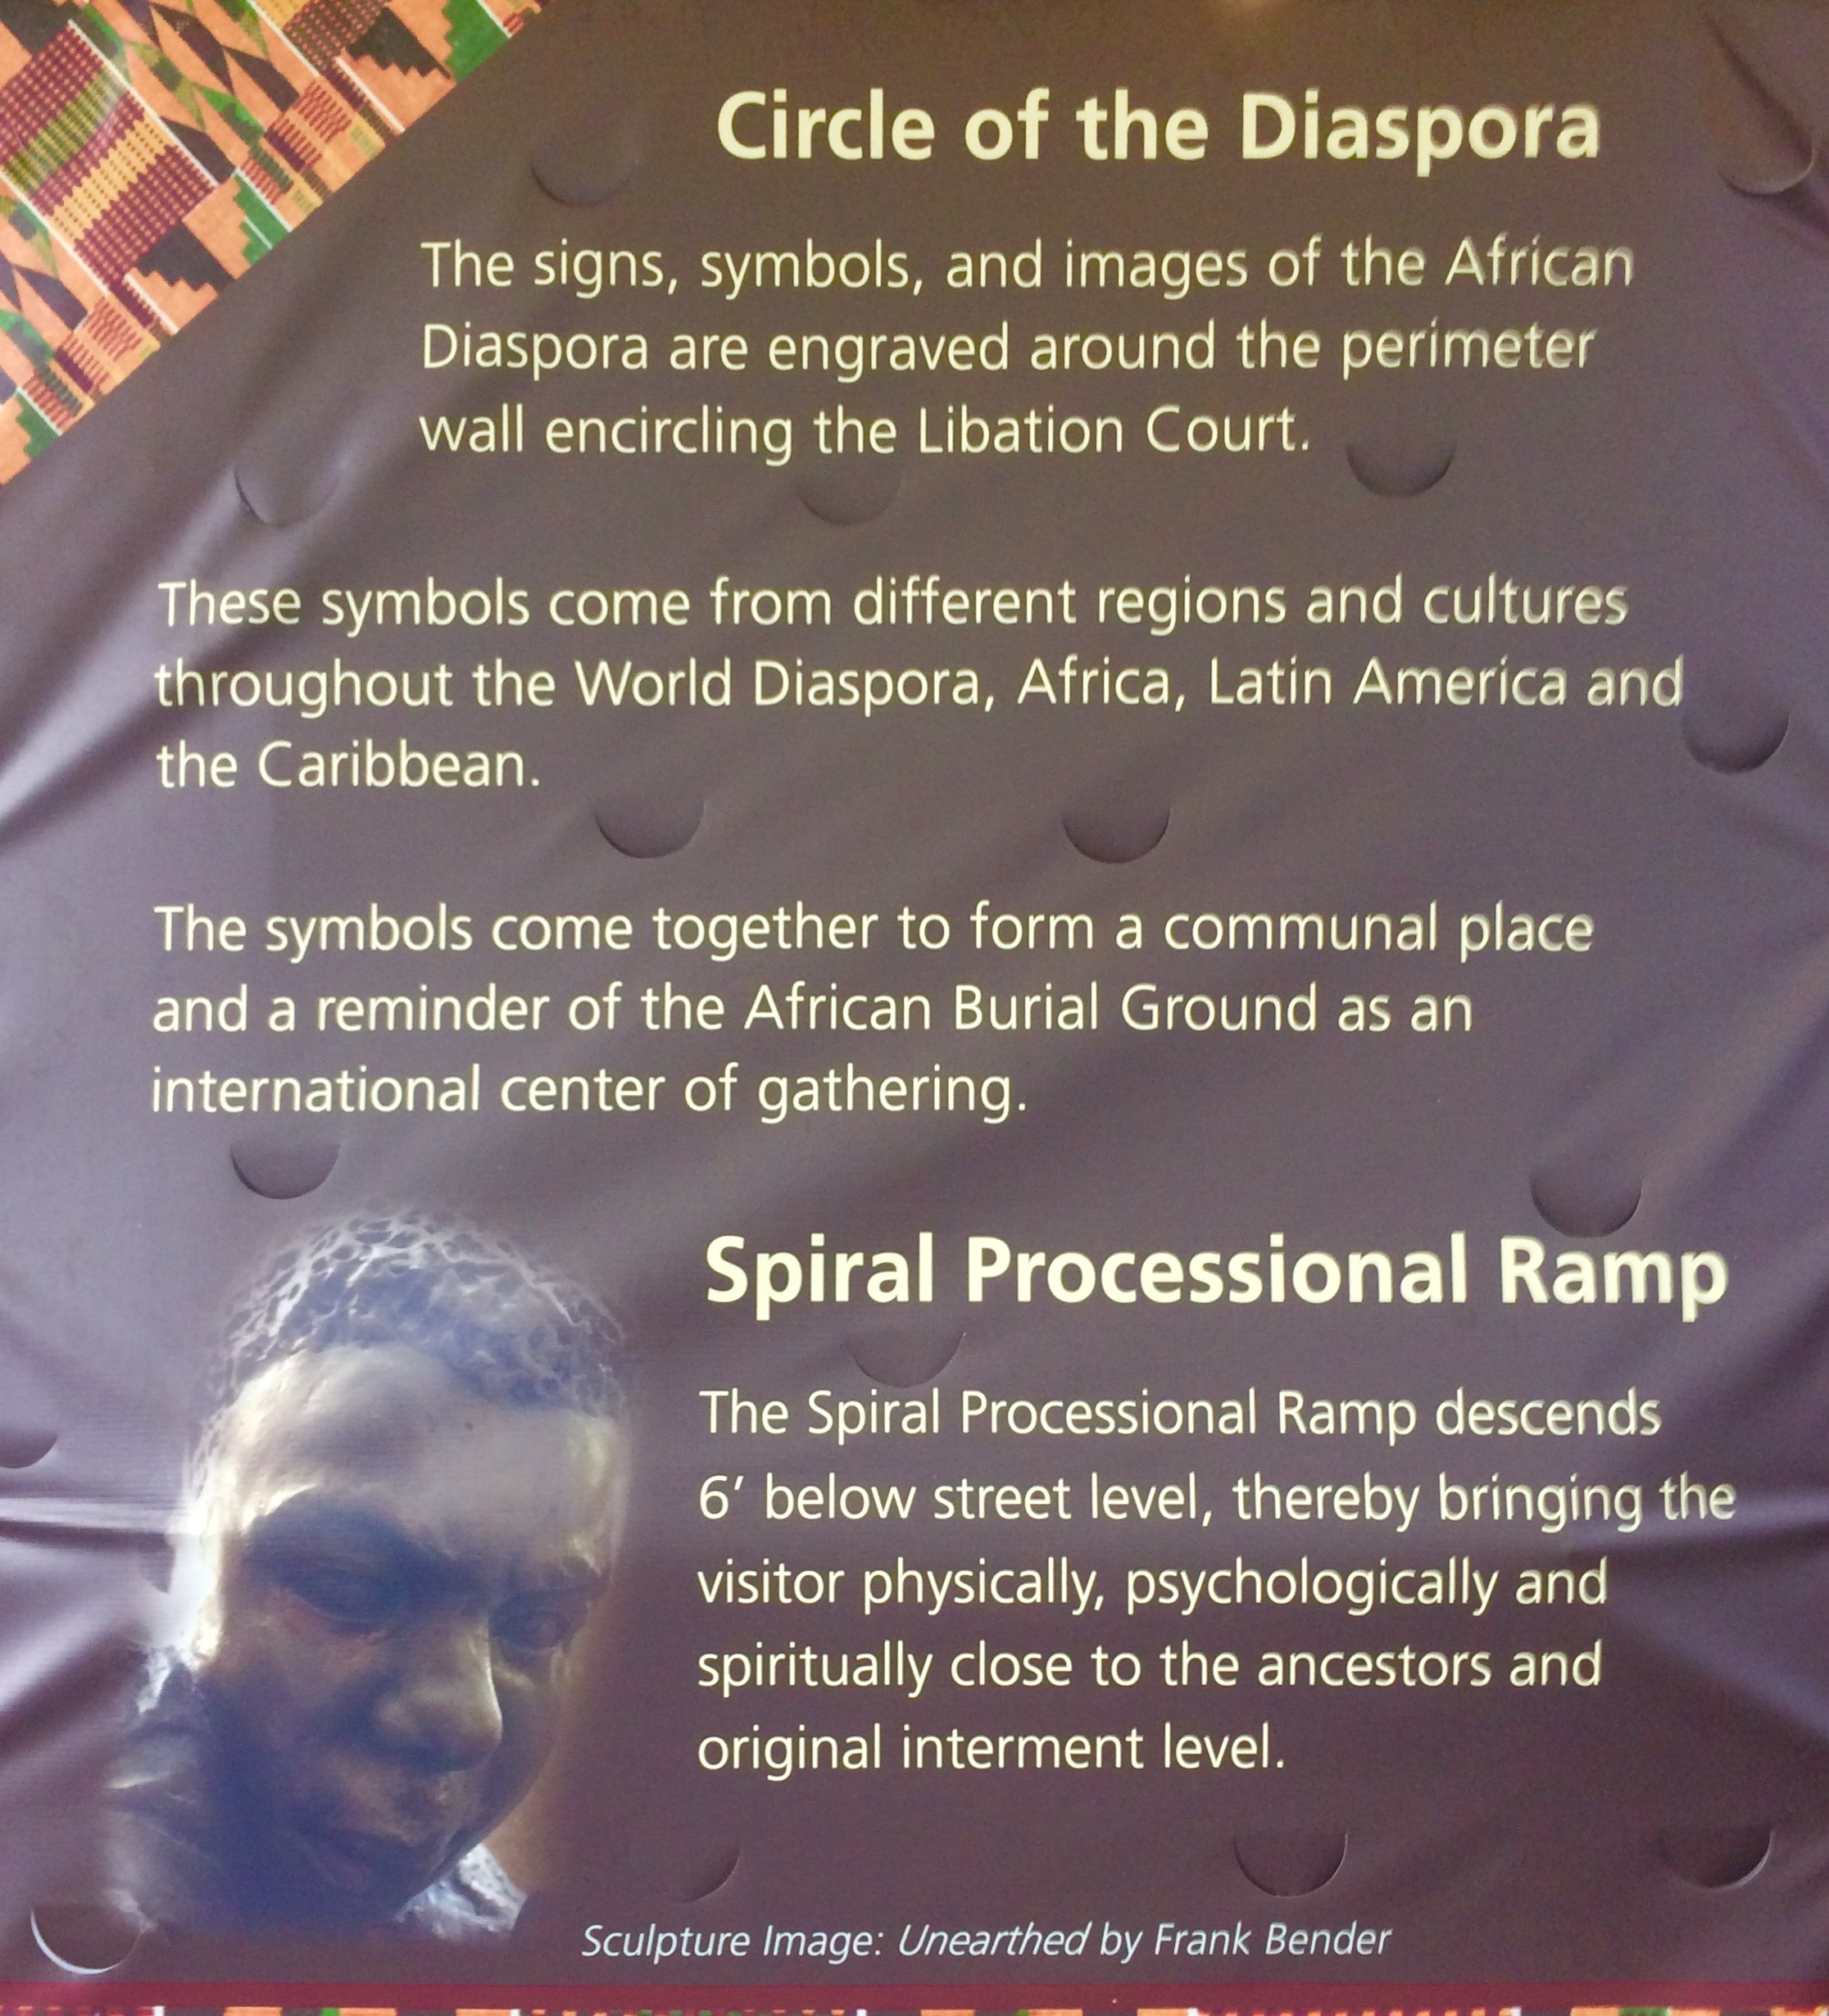 circle of Diaspora nyc photo by feng shui consultant laura cerrano